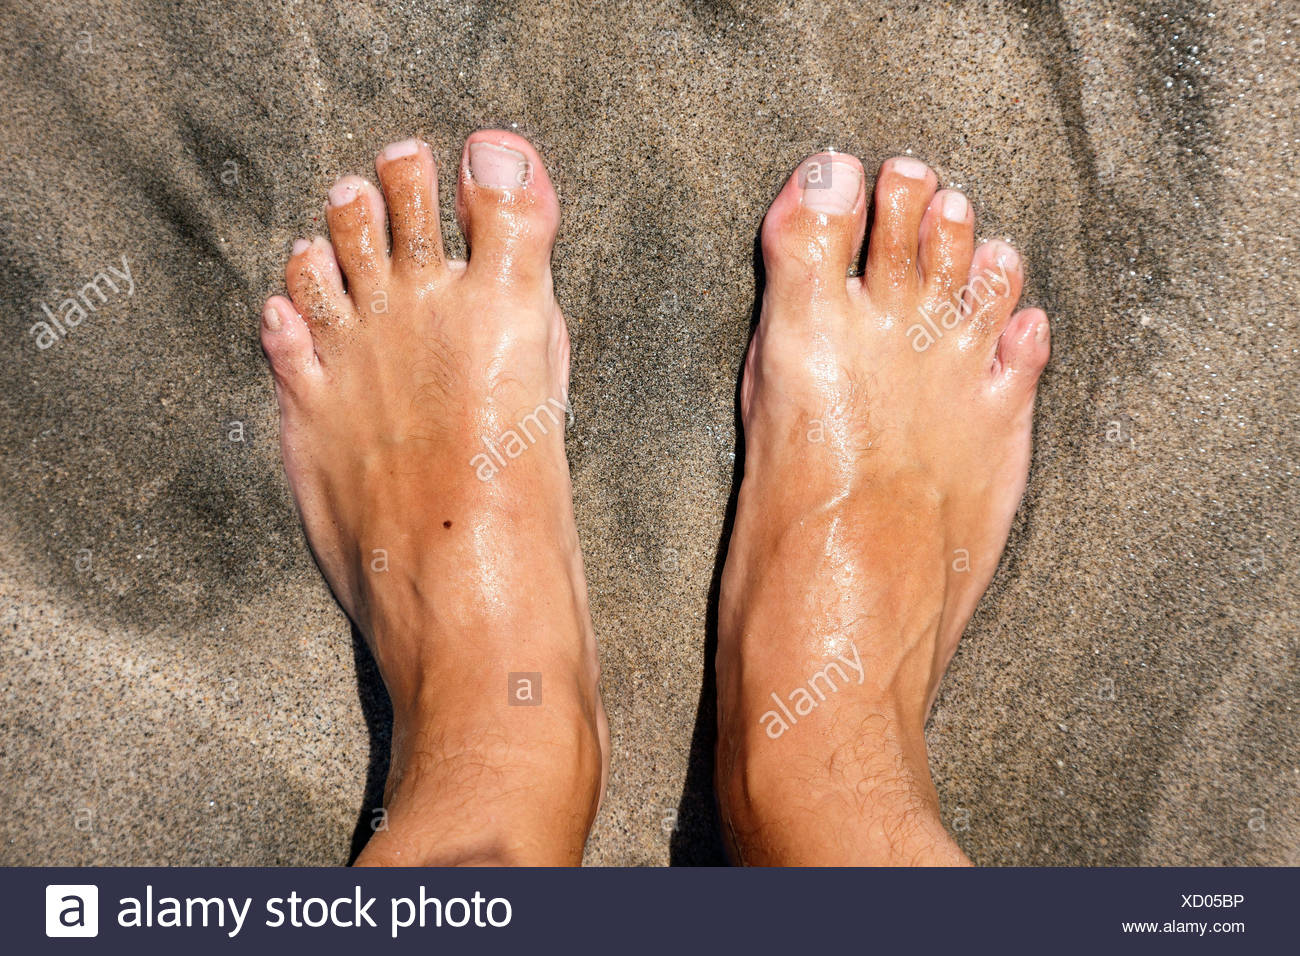 Feet on a beach, being lapped by the sea - Stock Image